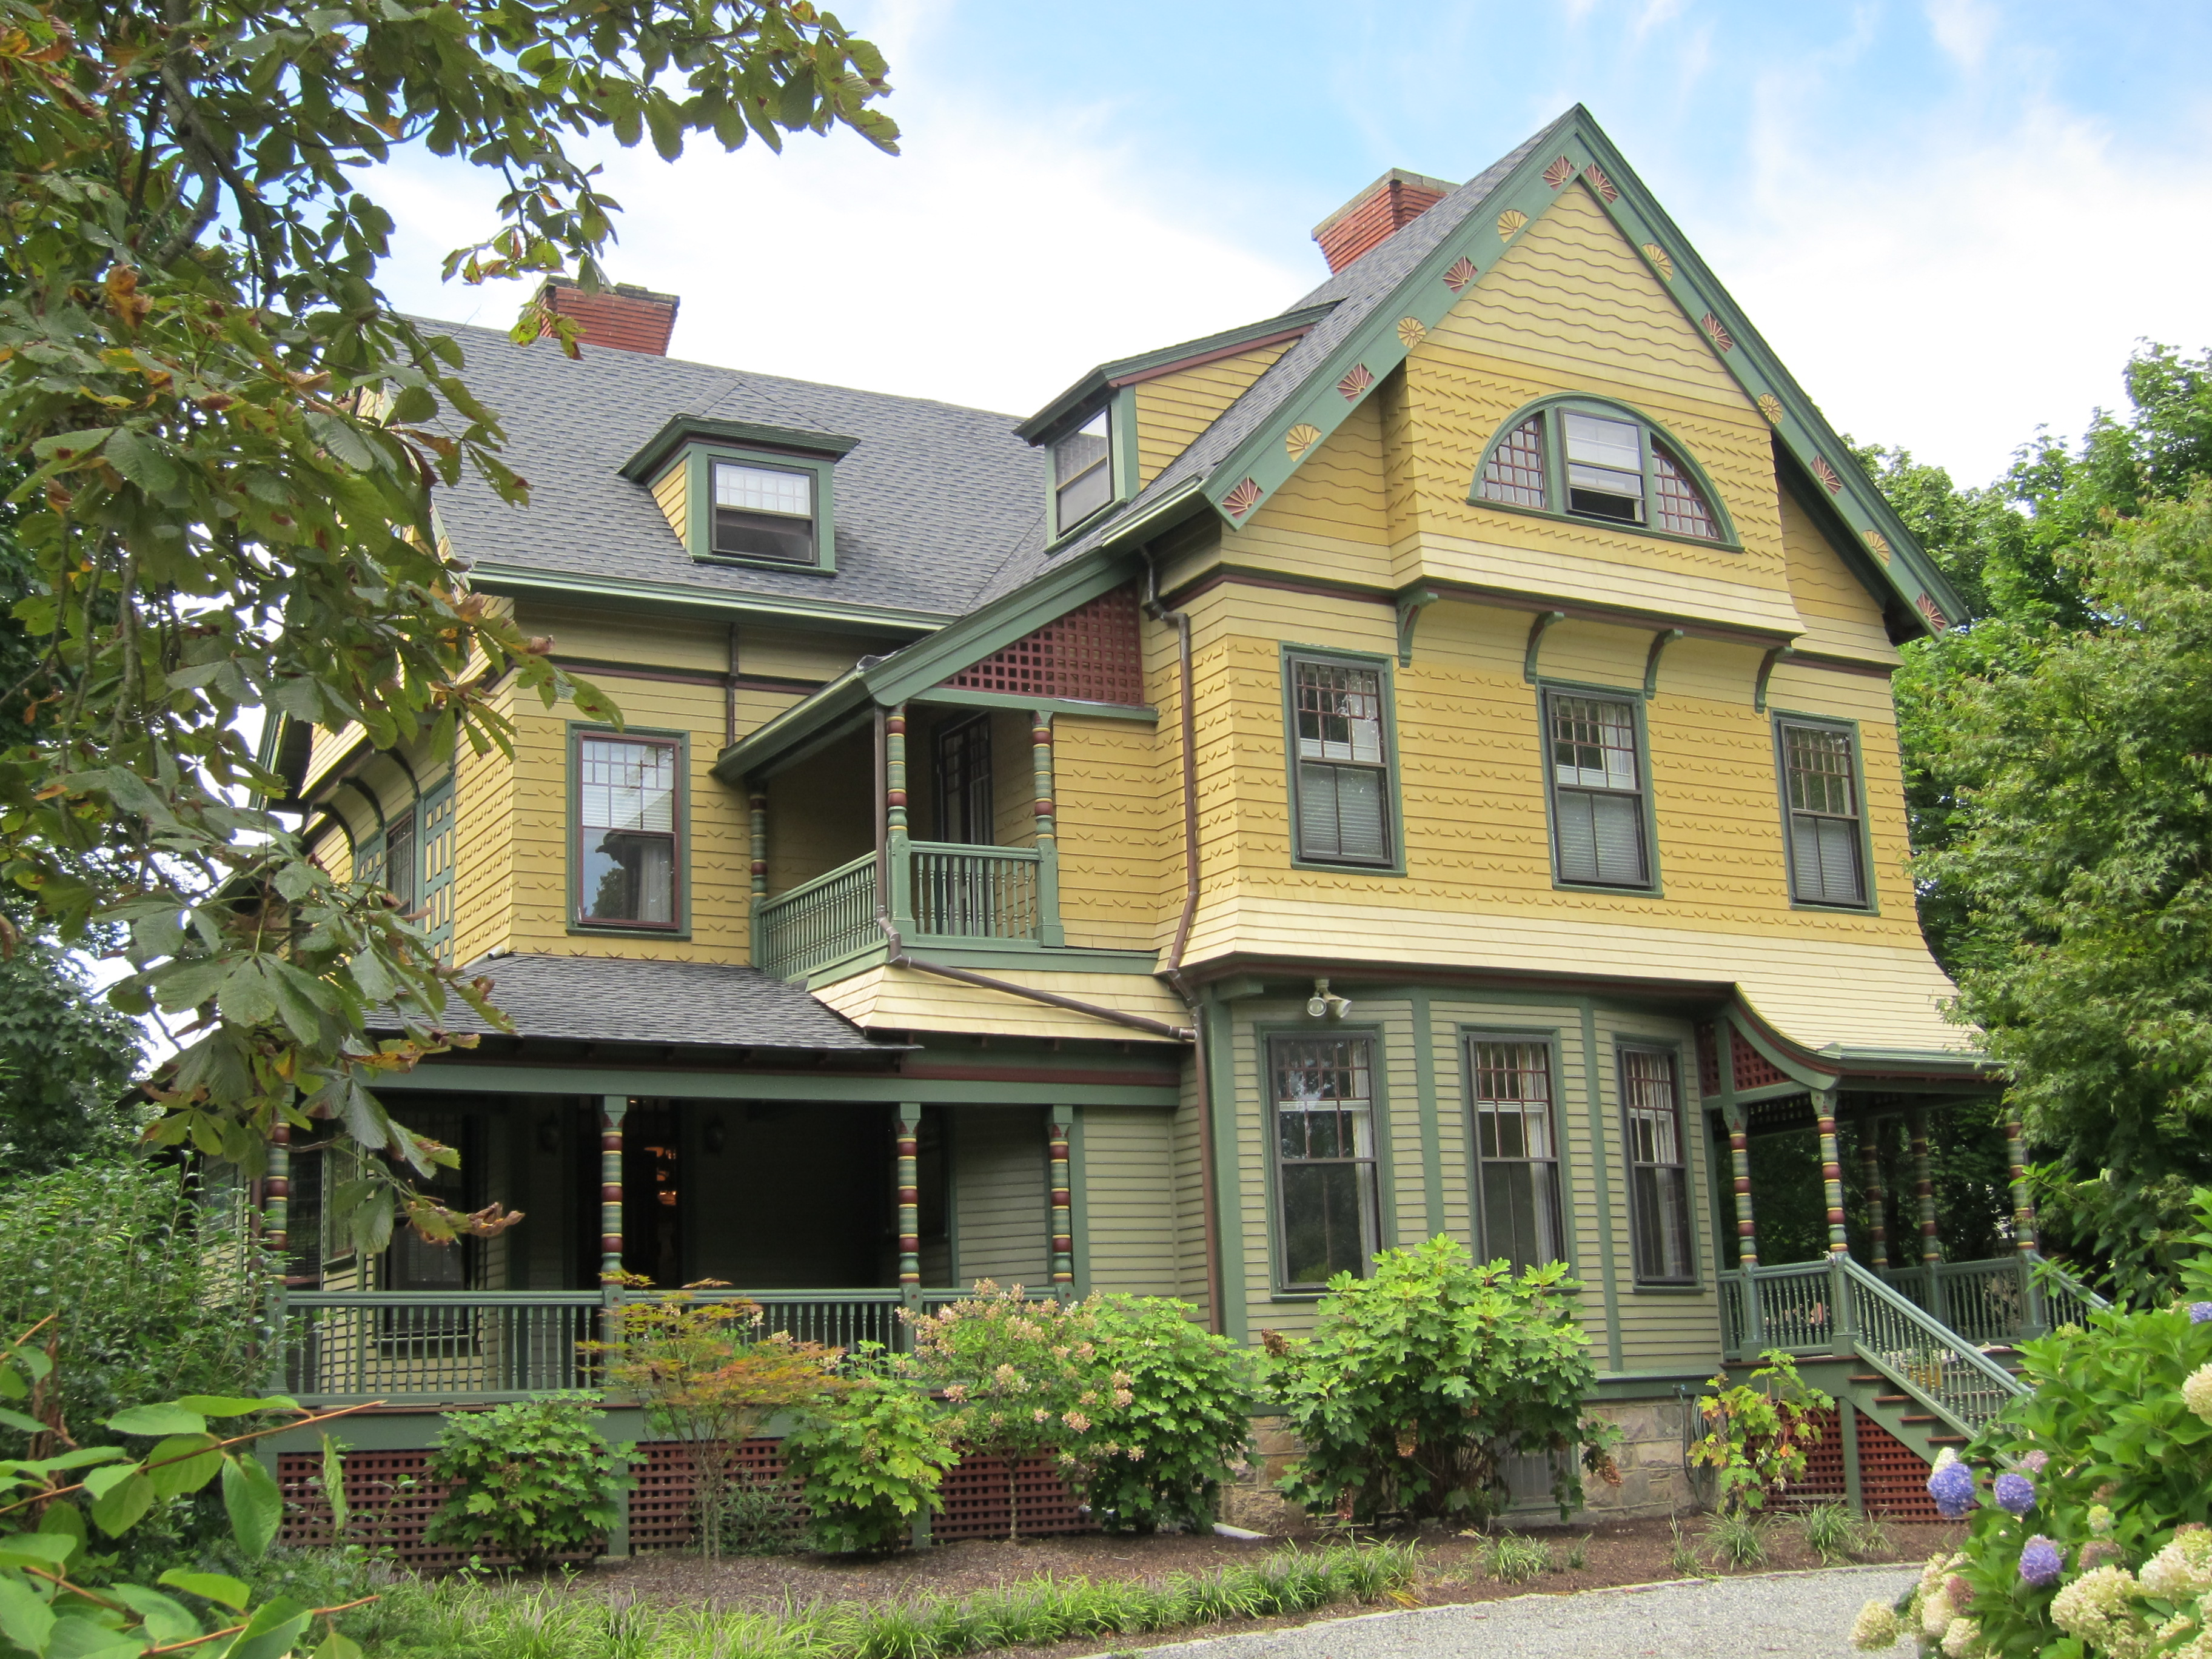 Architectural Color In Newport